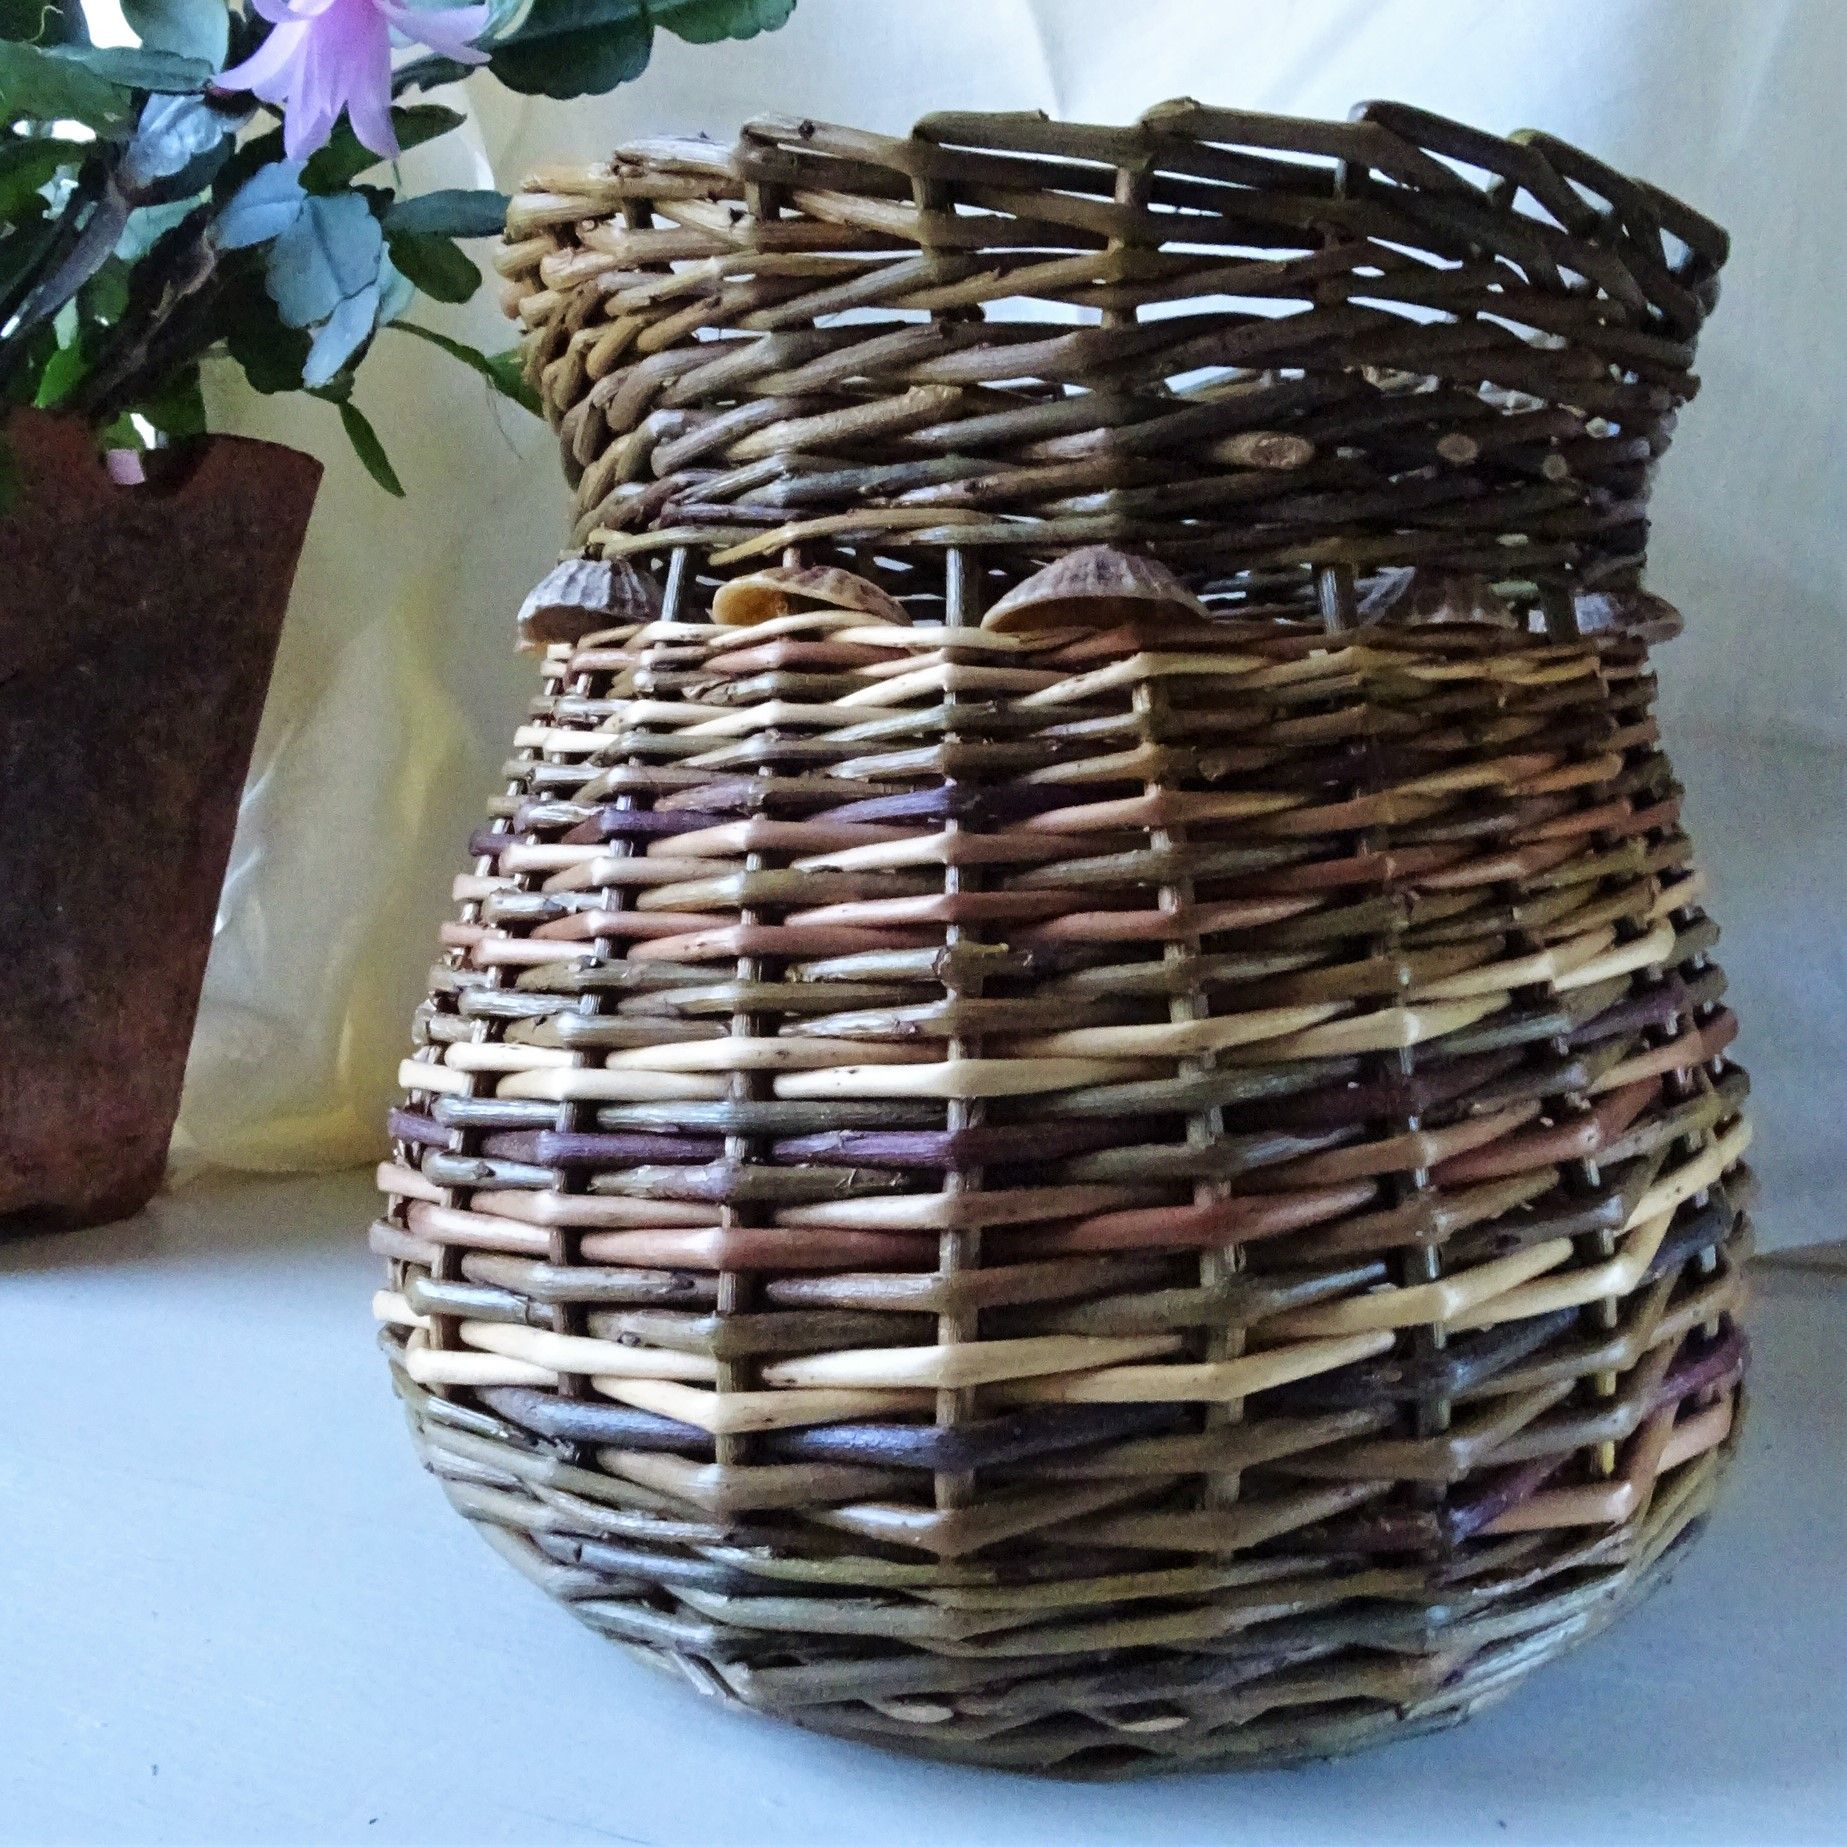 Part of a hand woven basket with shells